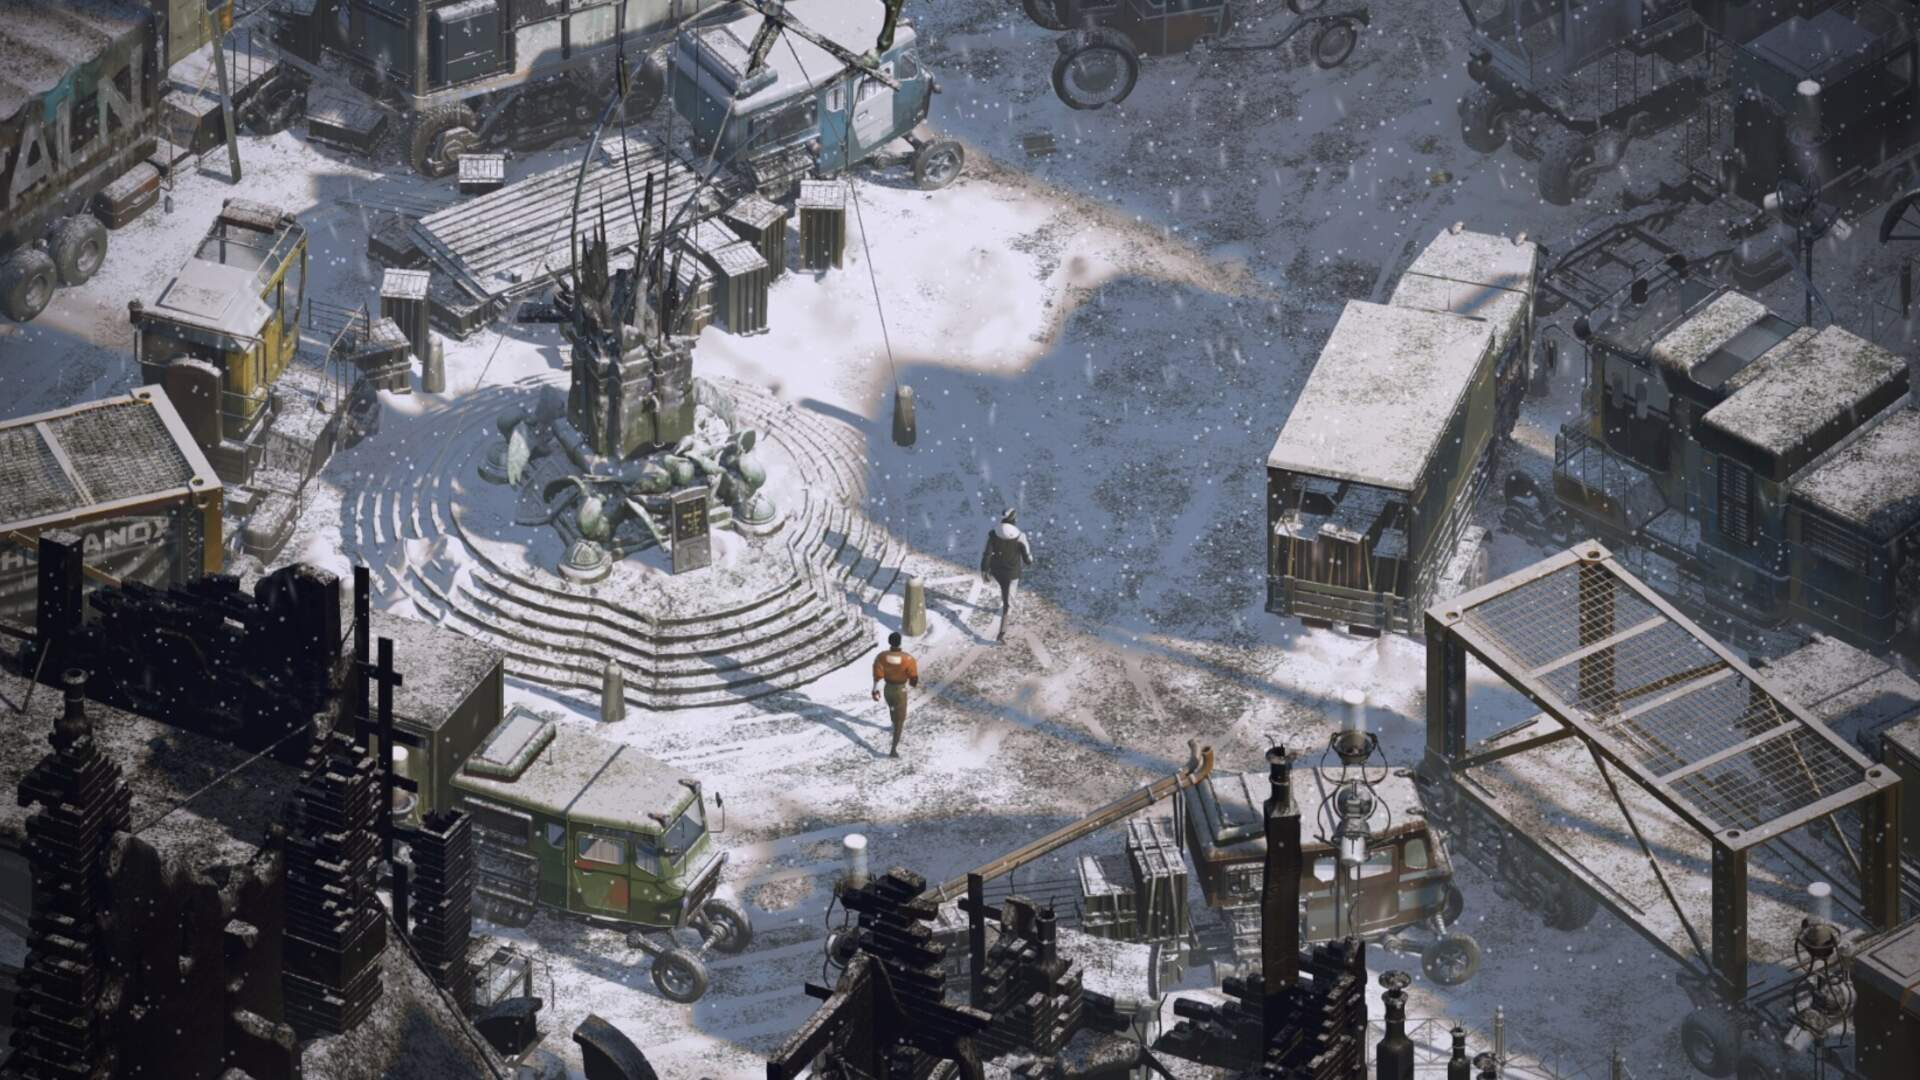 How Long Is Disco Elysium and How Many Days Are There?